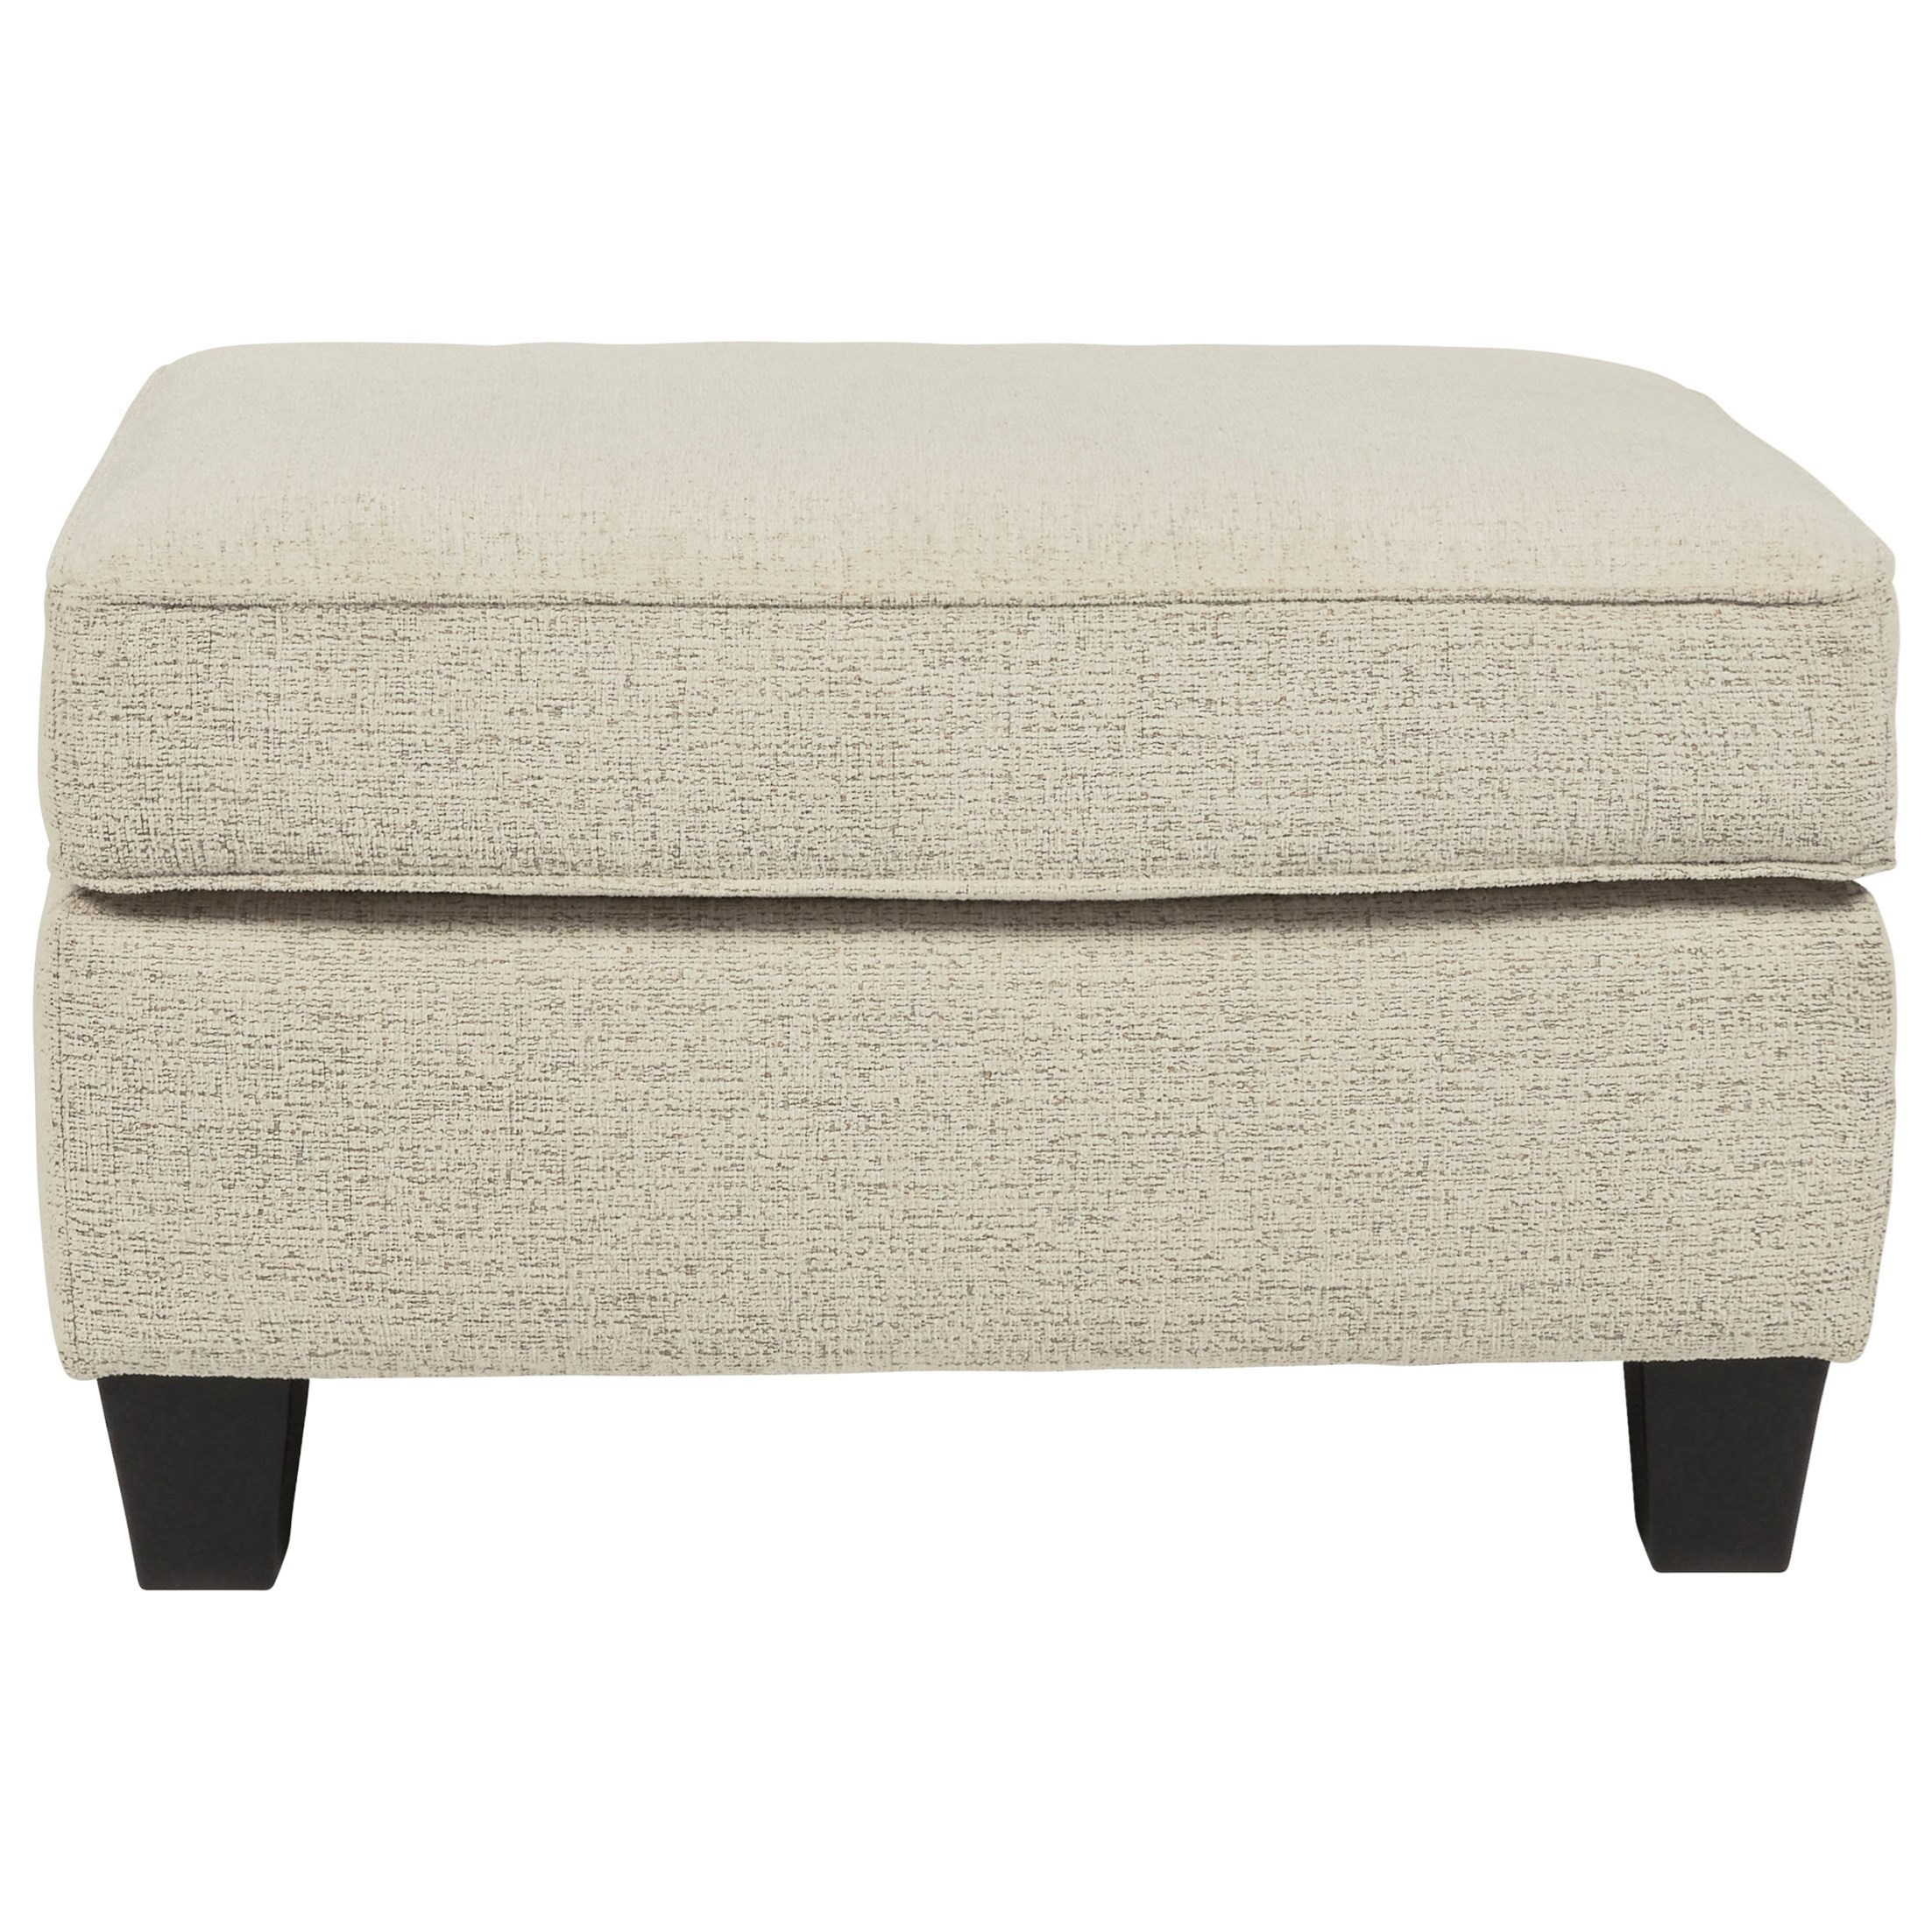 Abinger Ottoman by Signature Design by Ashley at Rife's Home Furniture